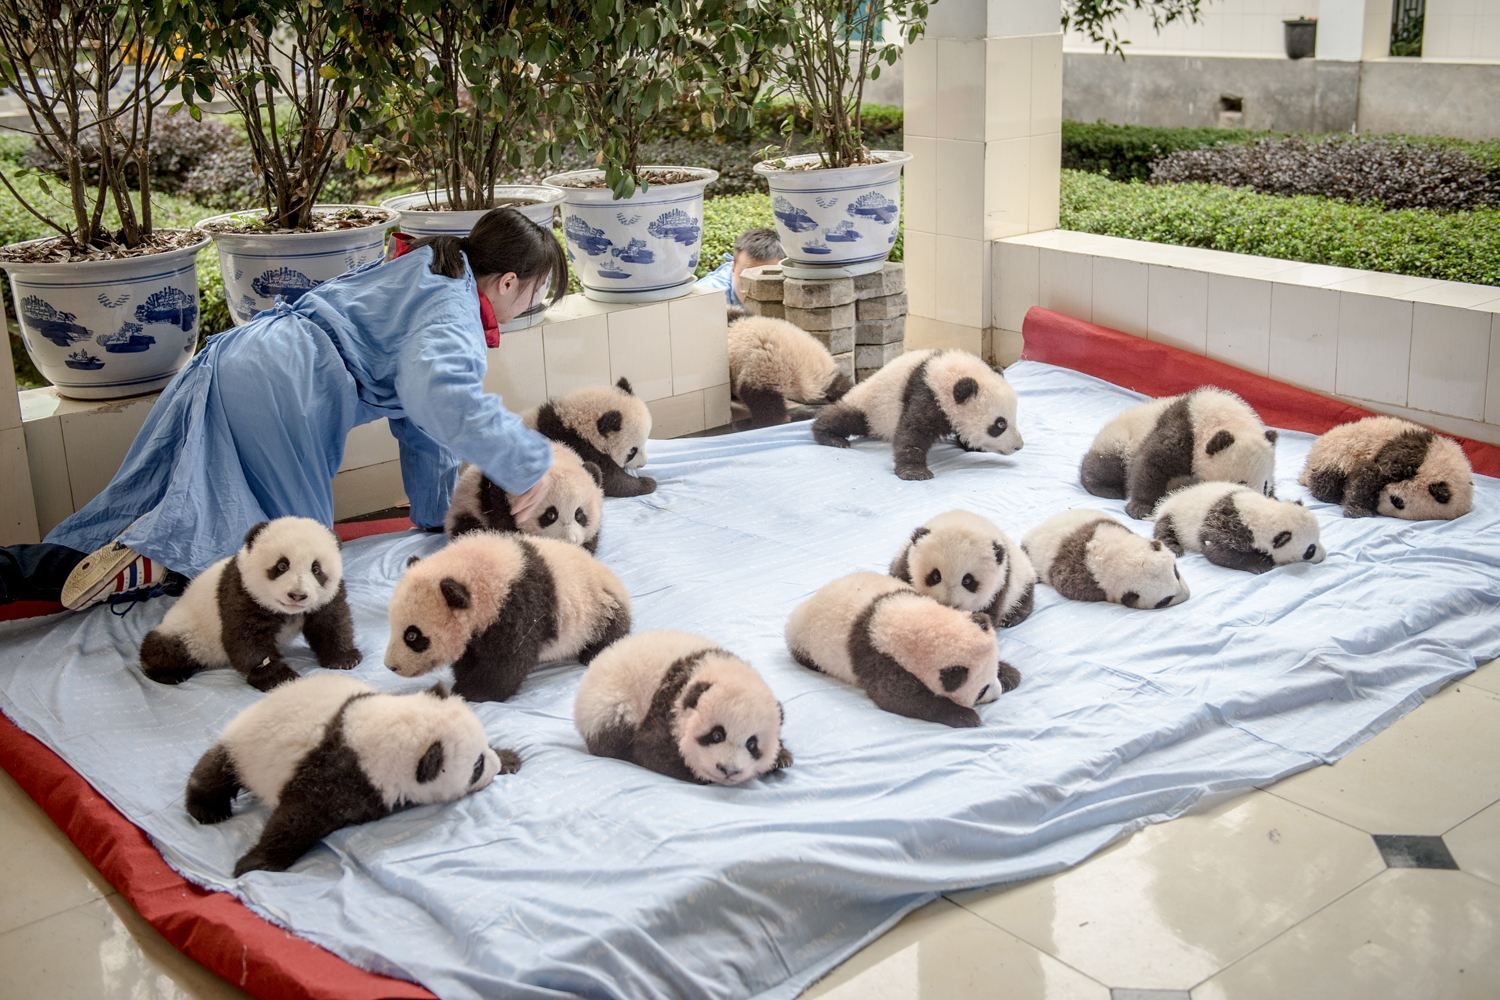 Fourteen panda cubs displayed on a blanket at the breeding center of Bifengxia Panda Base managed,  by China Conservation and                               Research Center for the Giant Panda.